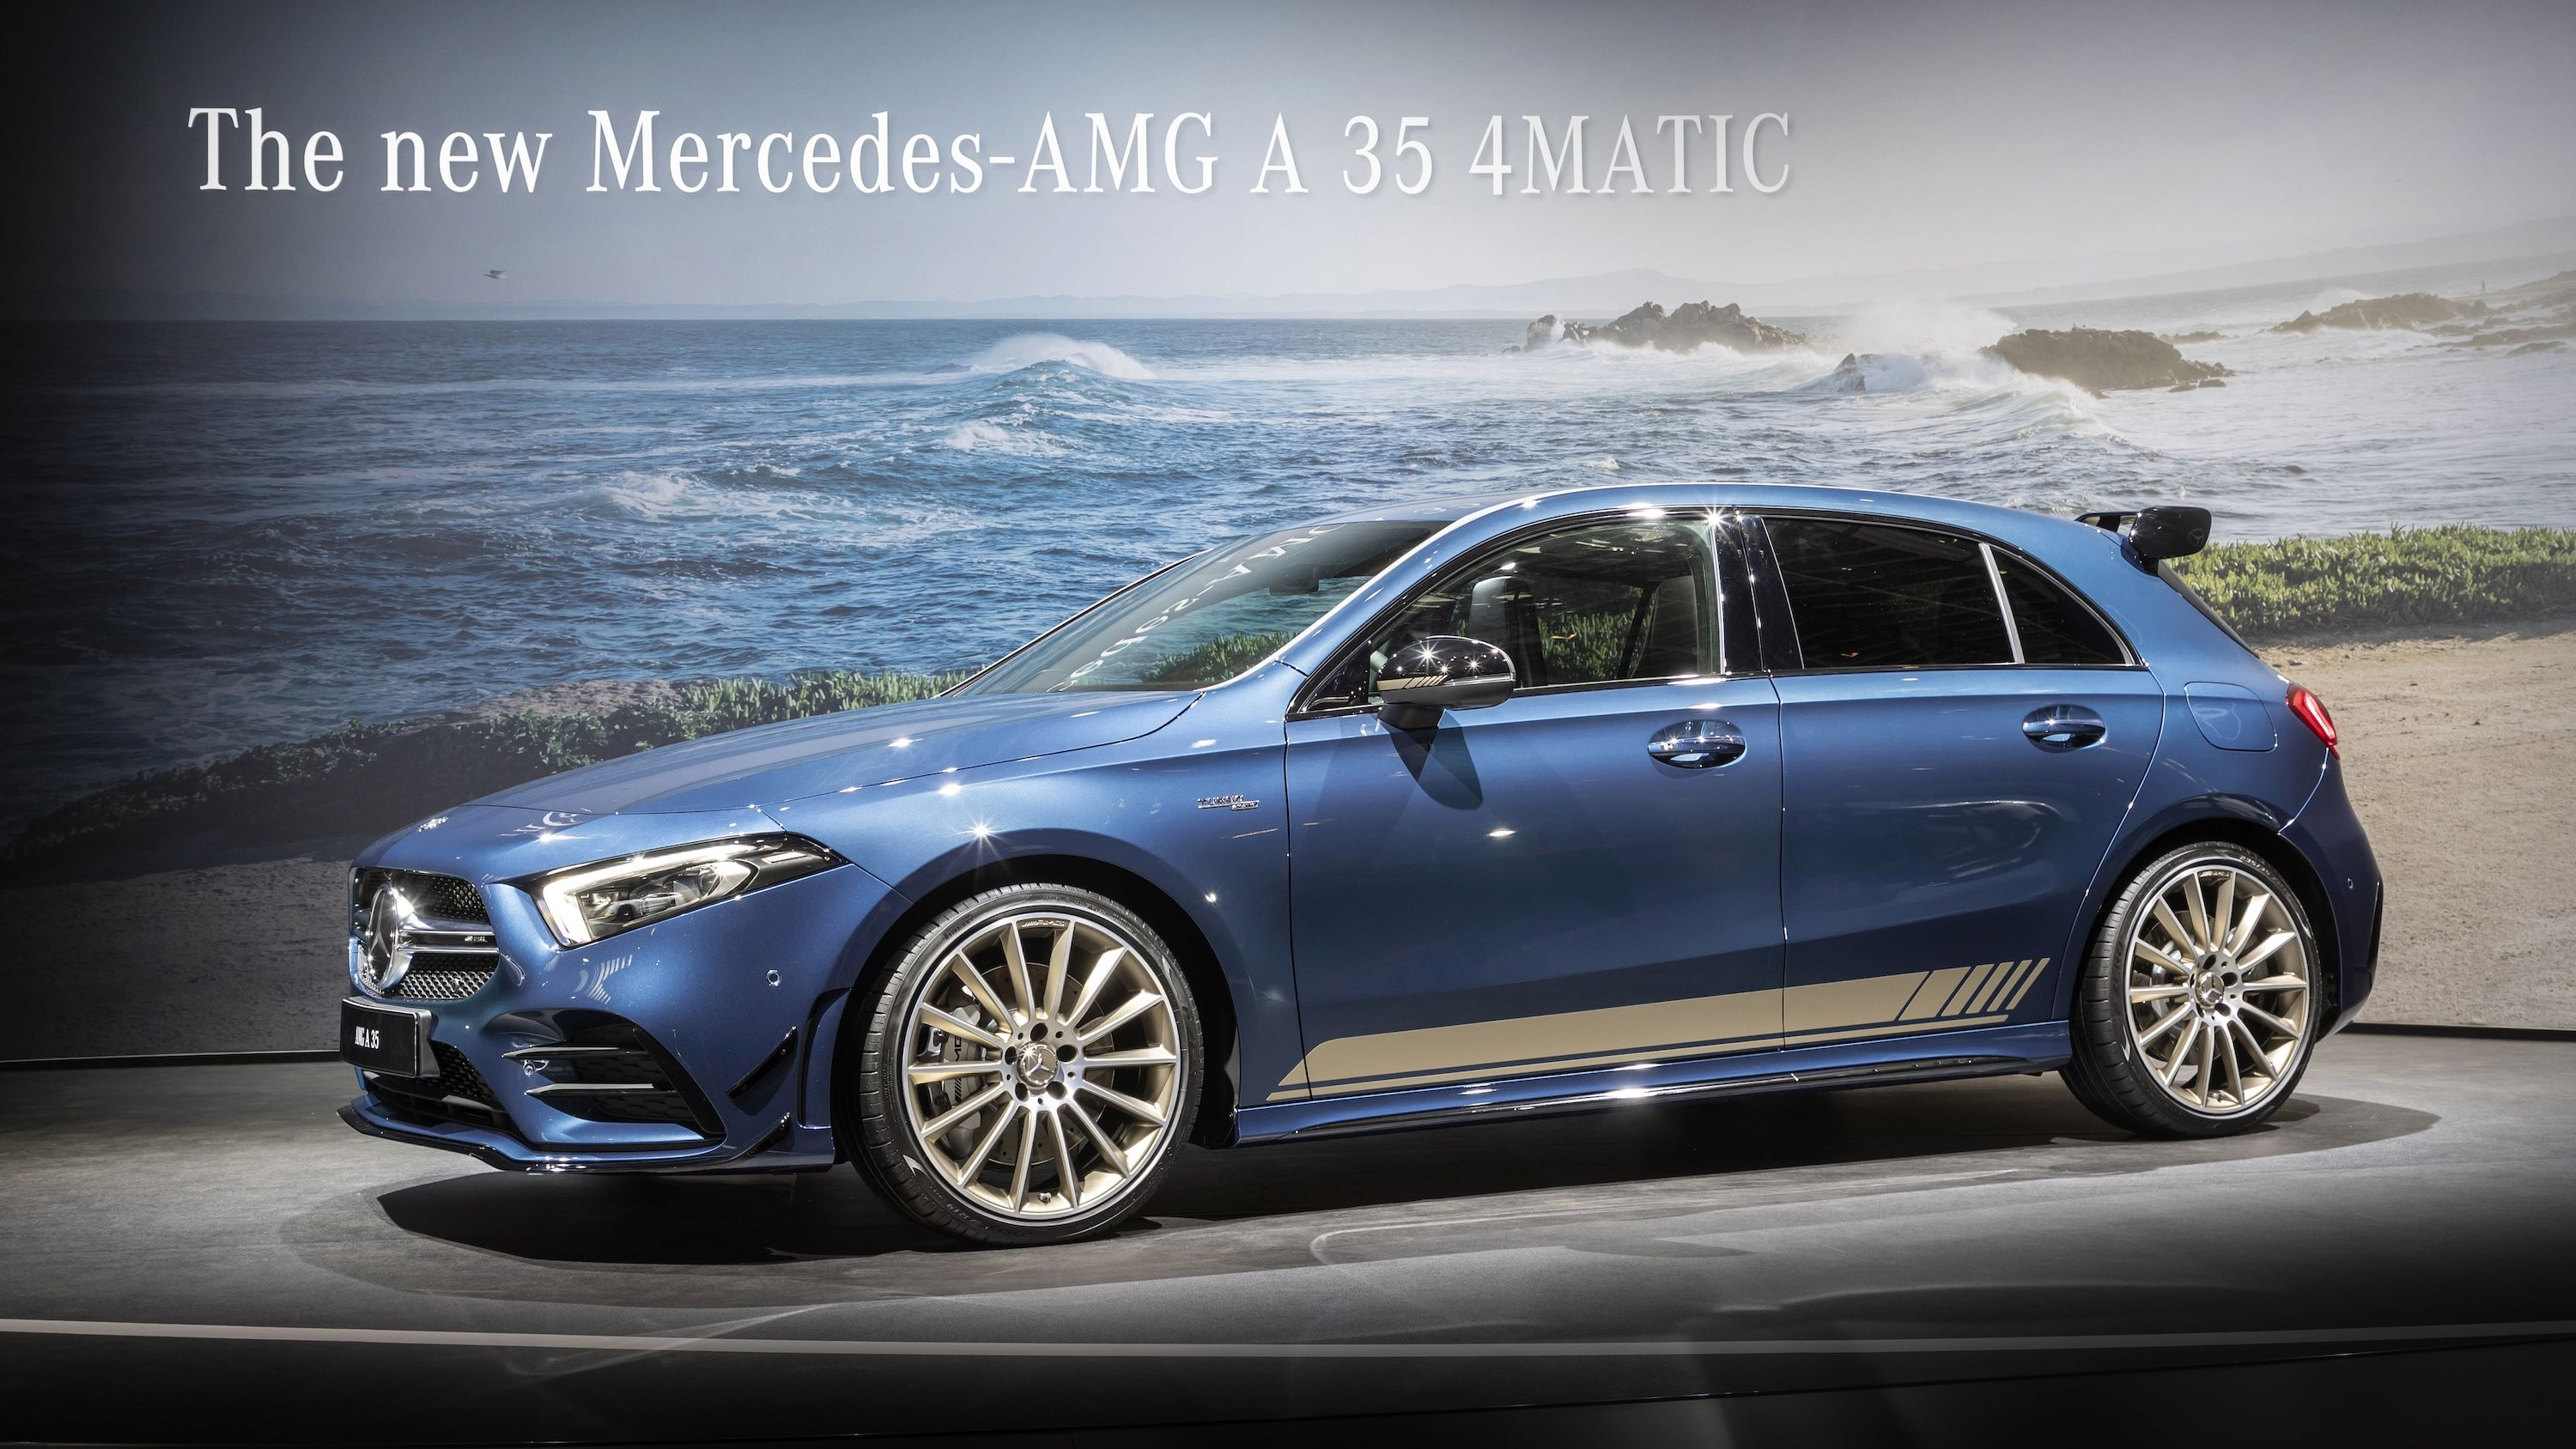 The 2019 Mercedes Amg A35 Showed Up In Paris Wearing A Stunning